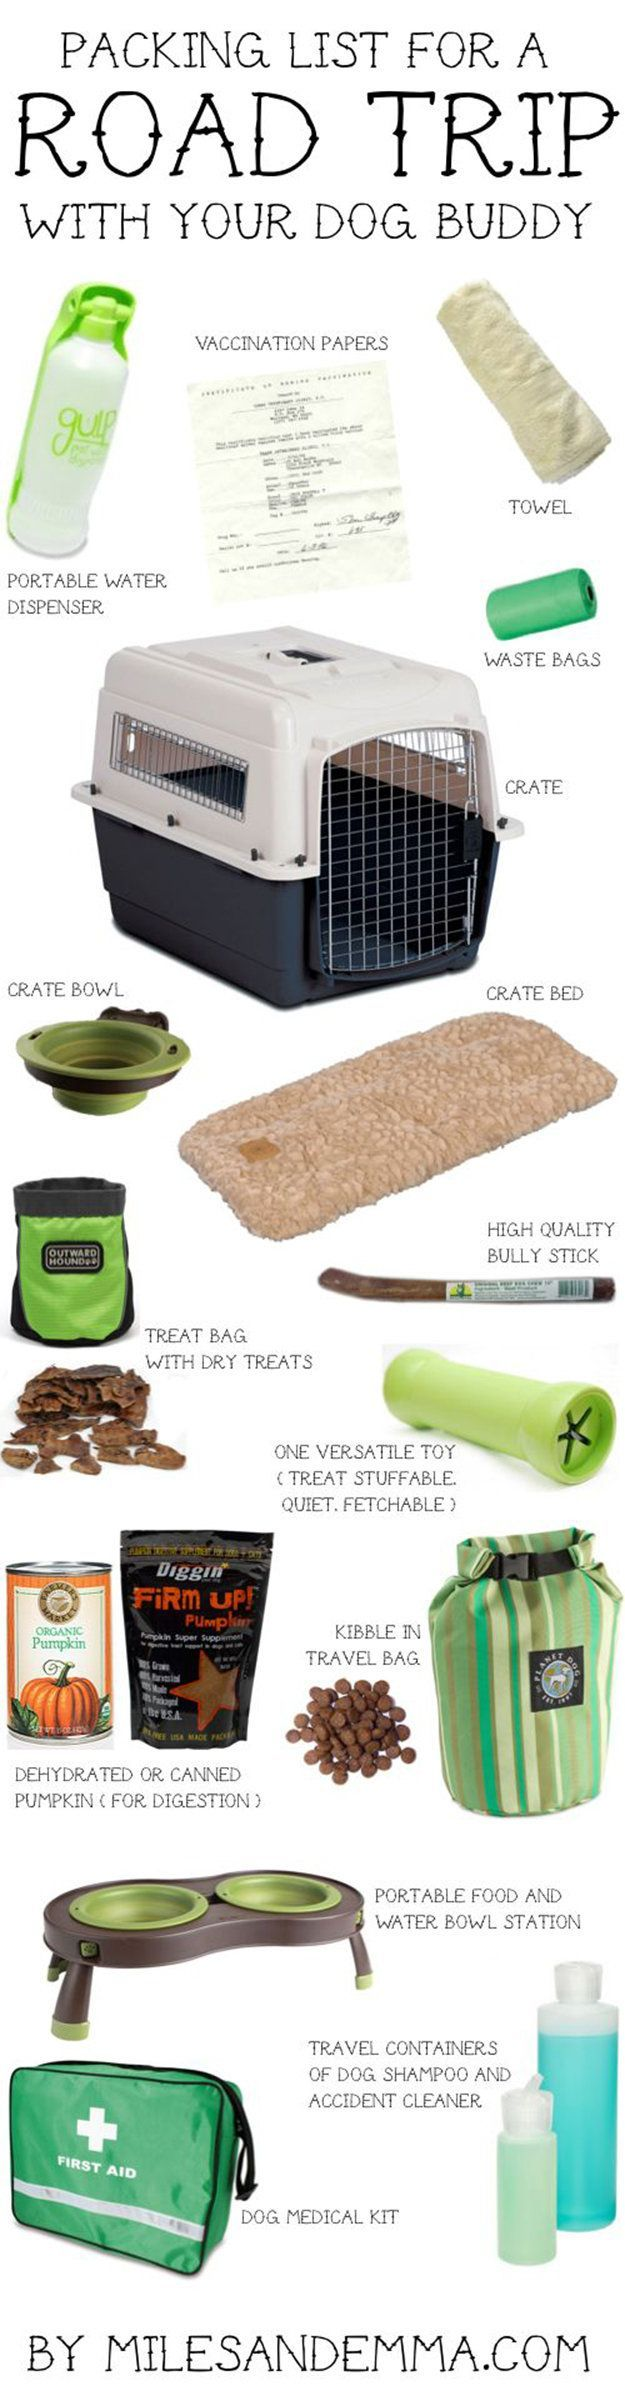 DIY Road Trip Ideas For Your Pet -- rest of the list is about other DIY road trippy stuff, but this image is a good reminder of some basics and suggests some cool-looking products that I think I want to look into for the kids